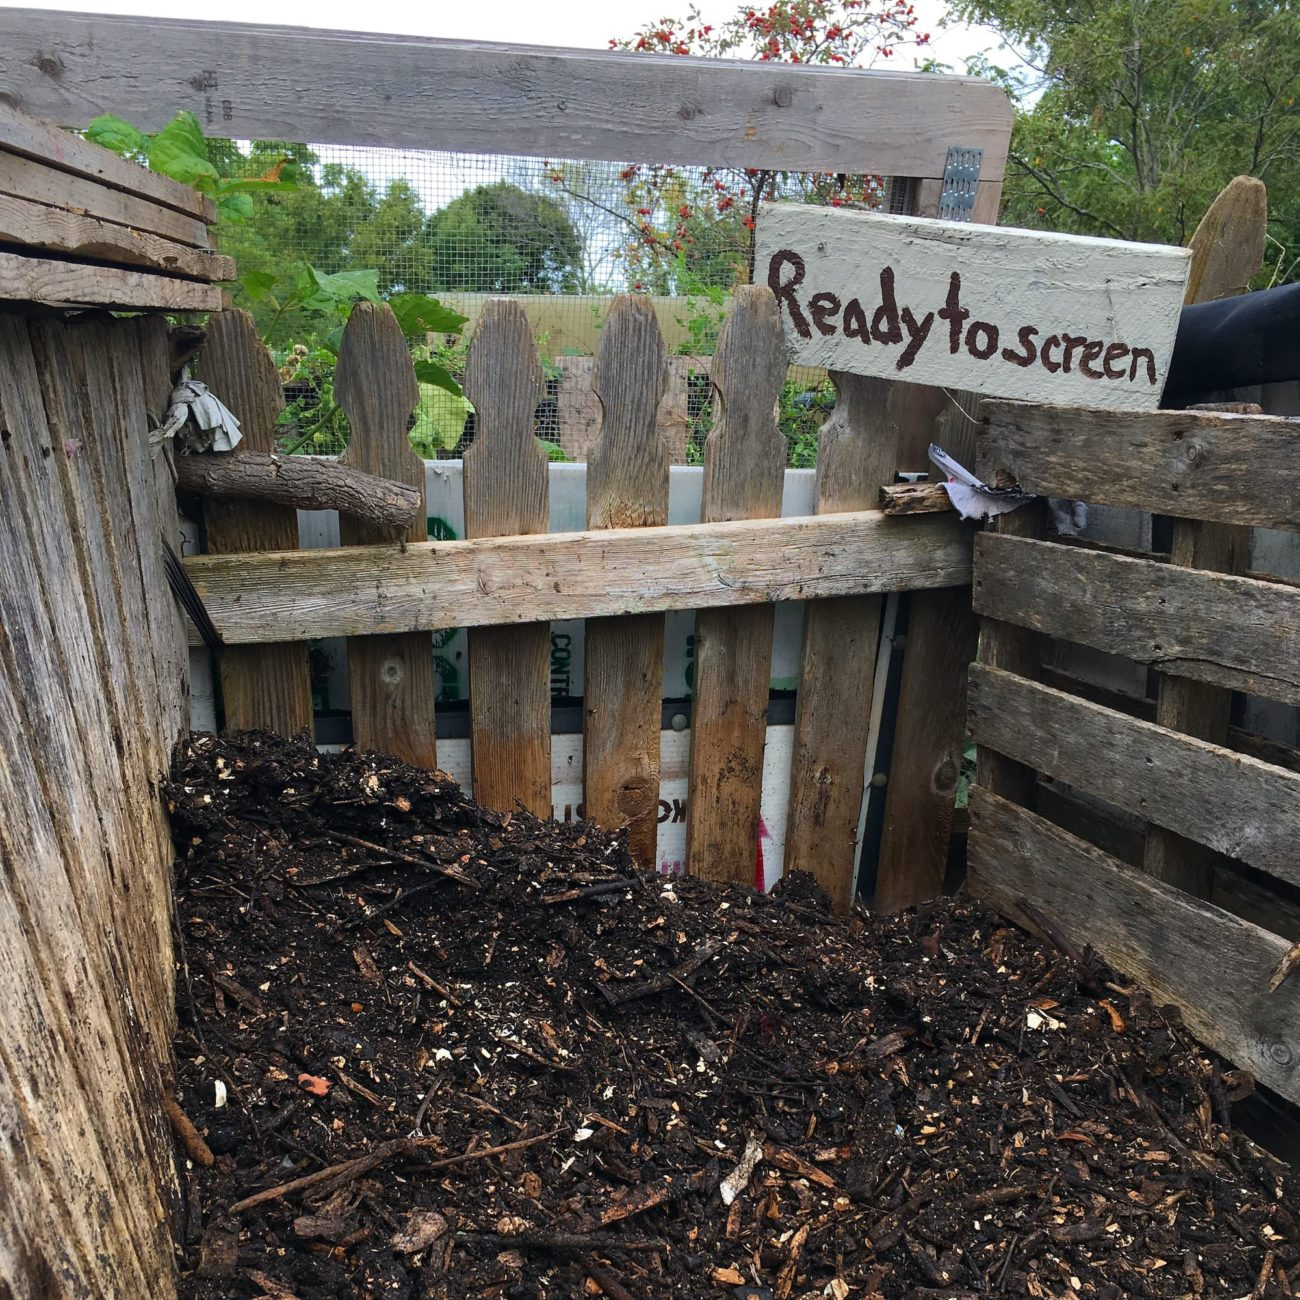 """Pile of finished compost next to a sign that reads """"Ready to Screen""""."""